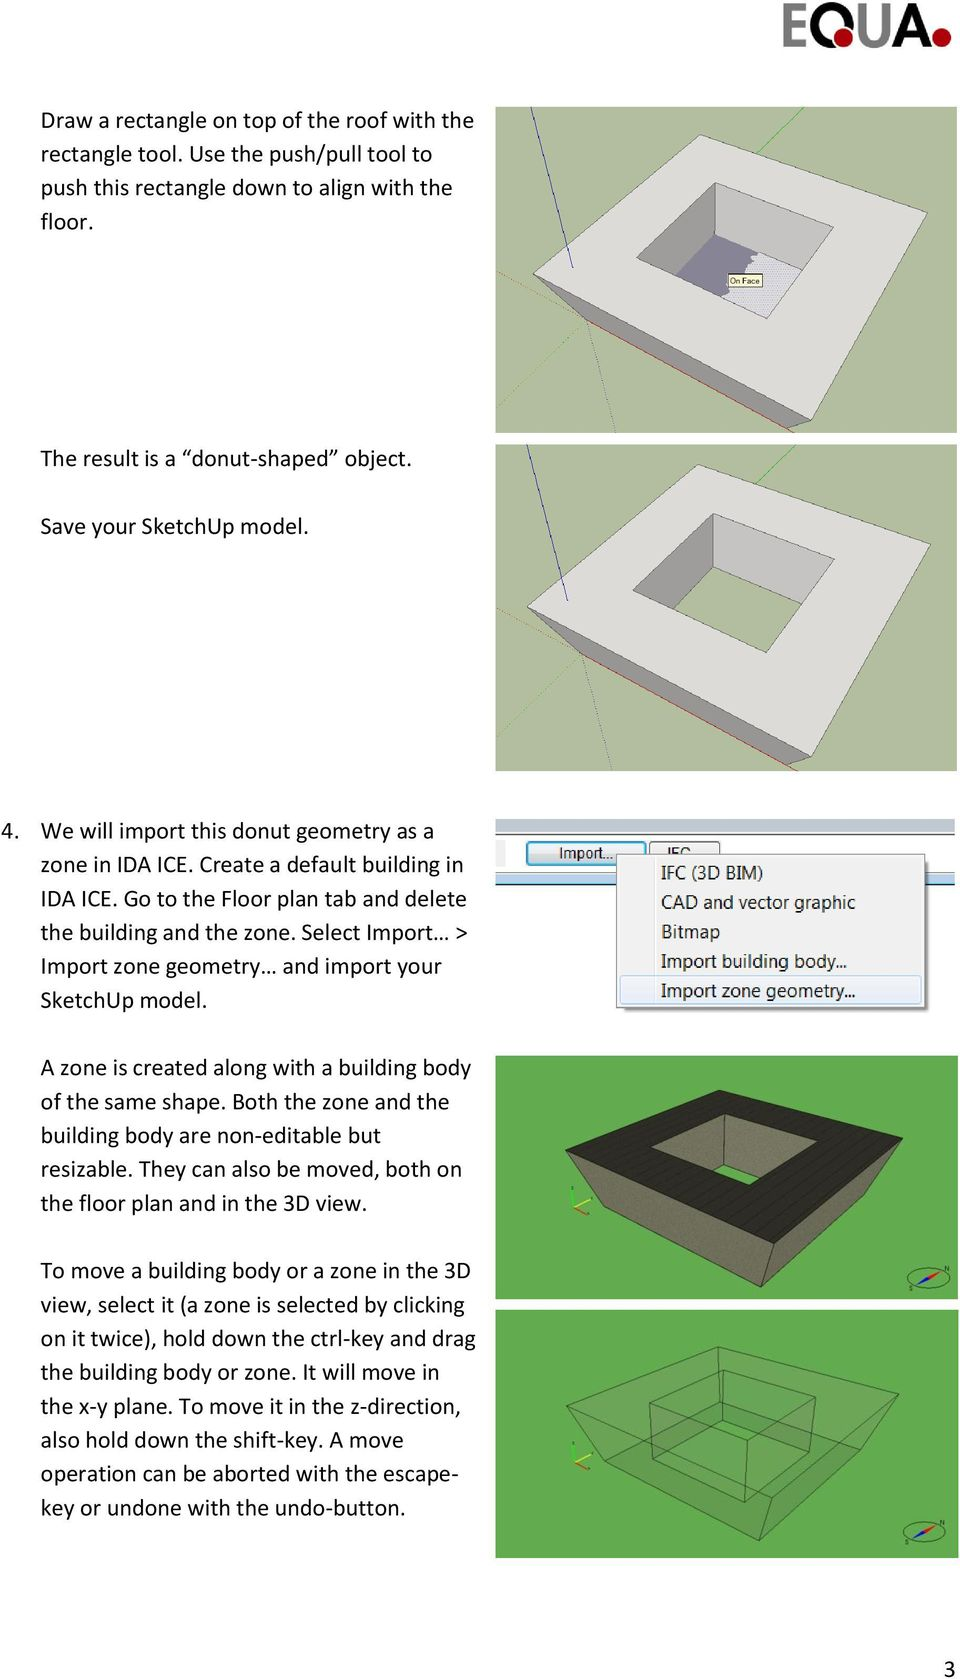 Exercise: Building and zone geometry import from SketchUp - PDF